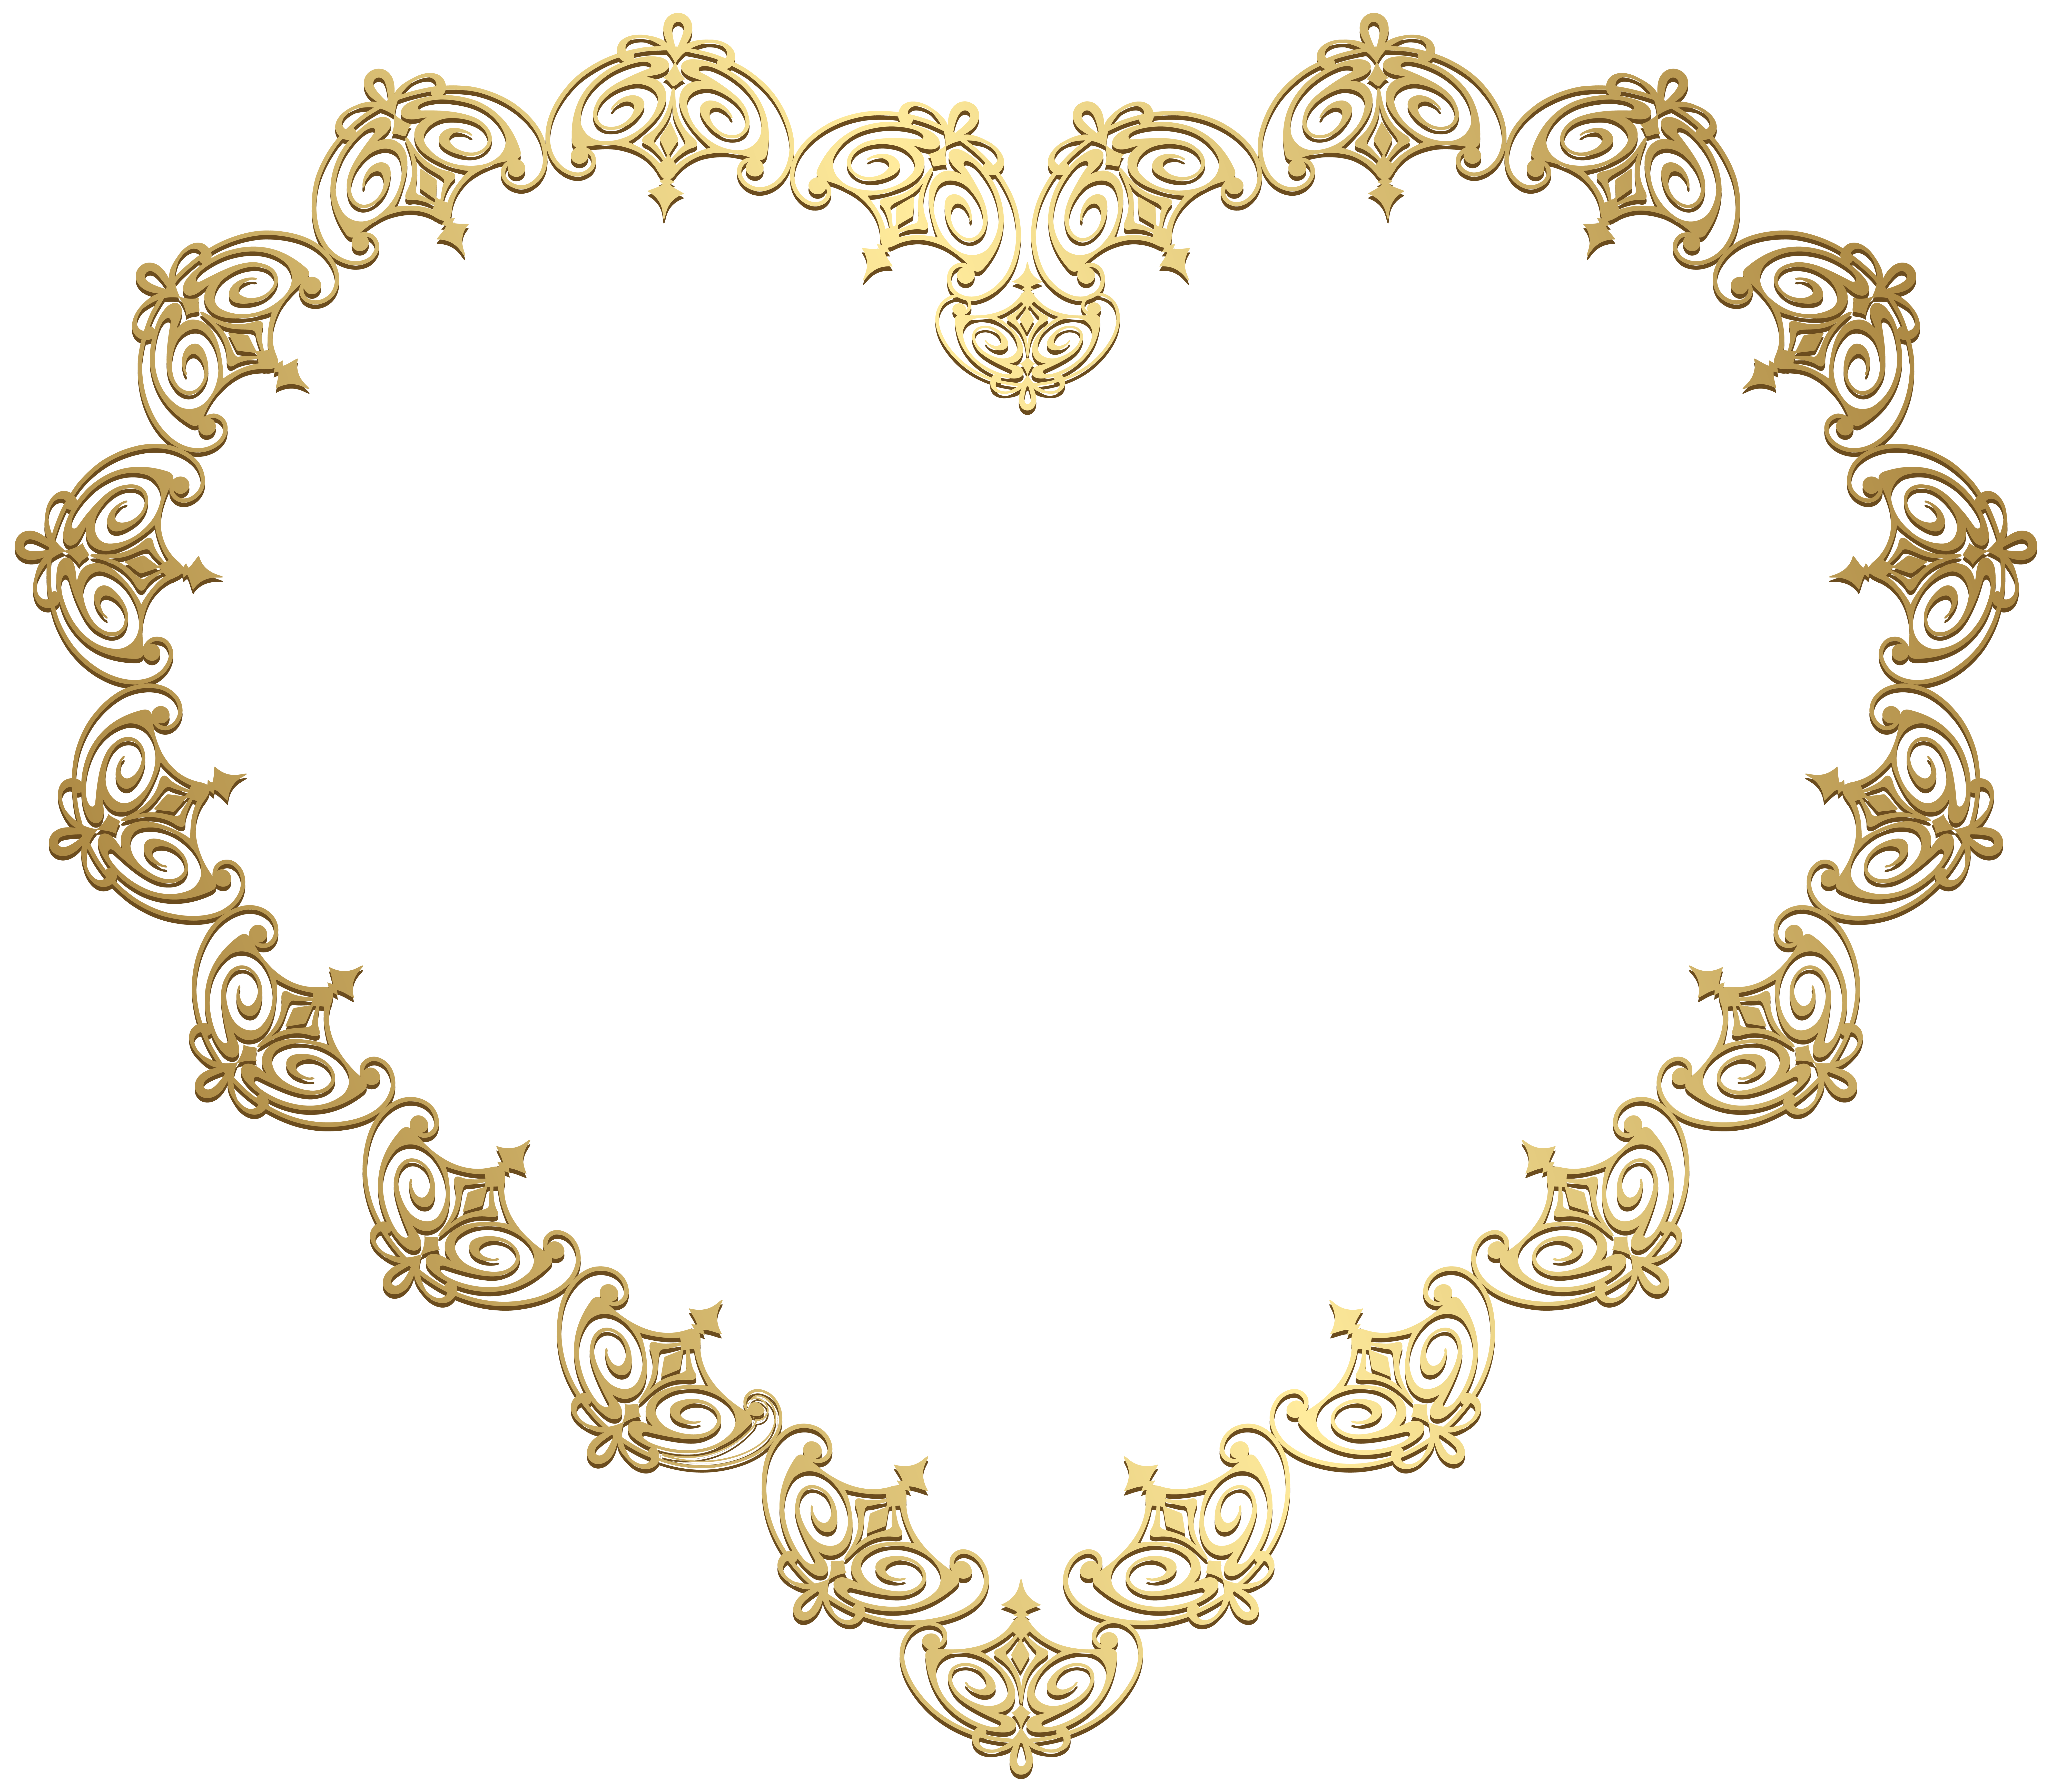 Cliparts heart gold graphic library download Heart Gold Transparent Clip Art Image | Gallery Yopriceville - High ... graphic library download